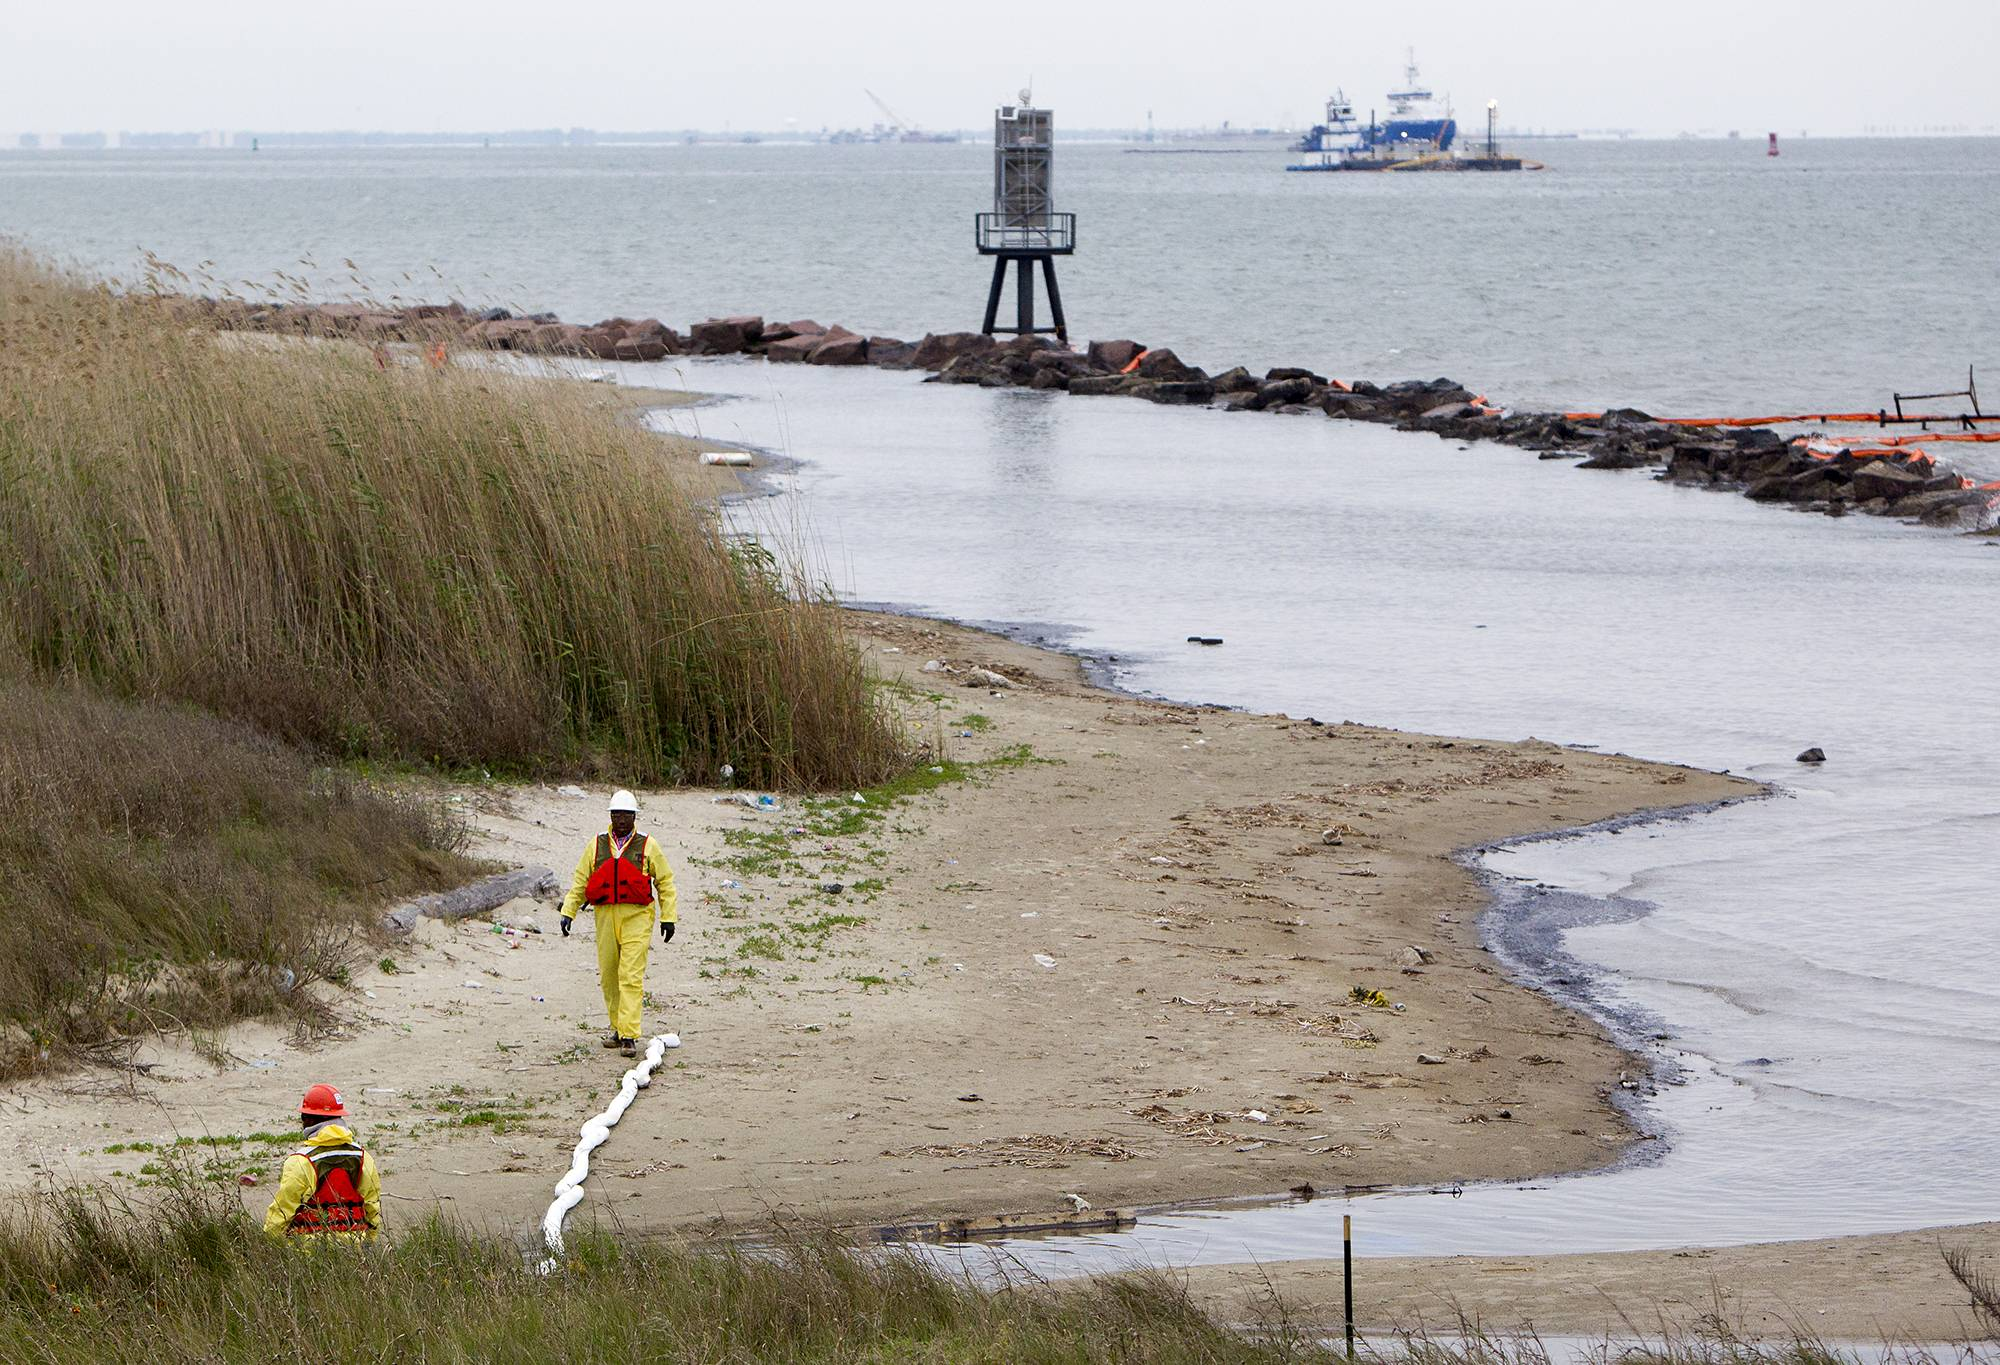 Crews work to clean oil from the shore in Galveston, Texas, Monday after thousands of gallons of tar-like oil spilled into the major shipping channel after a barge ran into a ship Saturday.